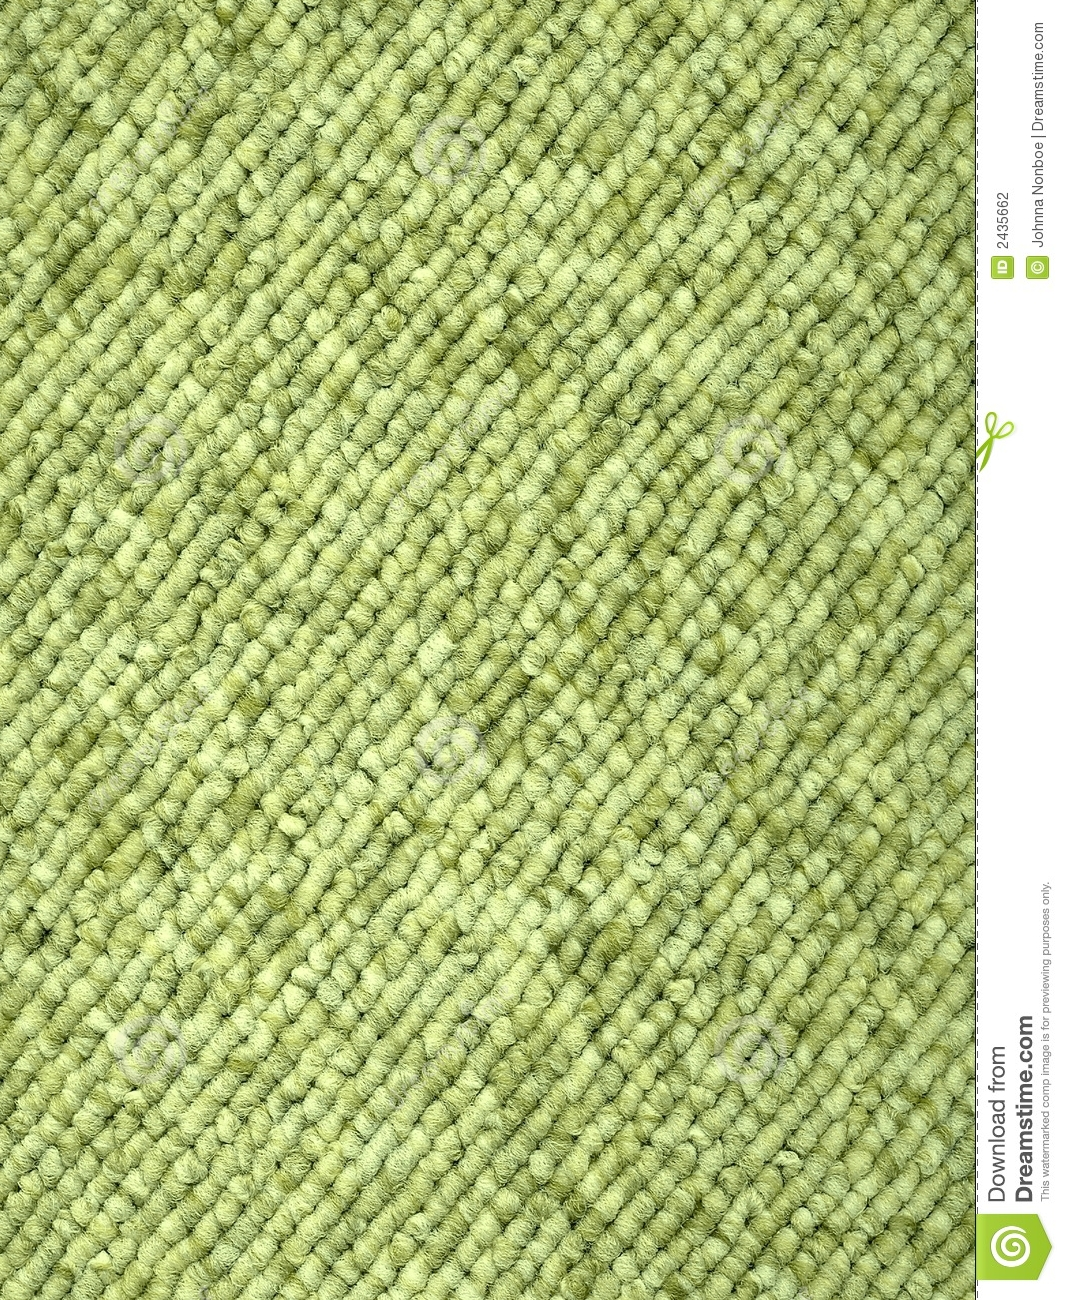 Grauer Teppichboden Green Loop-woven Carpet Stock Photography - Image: 2435662